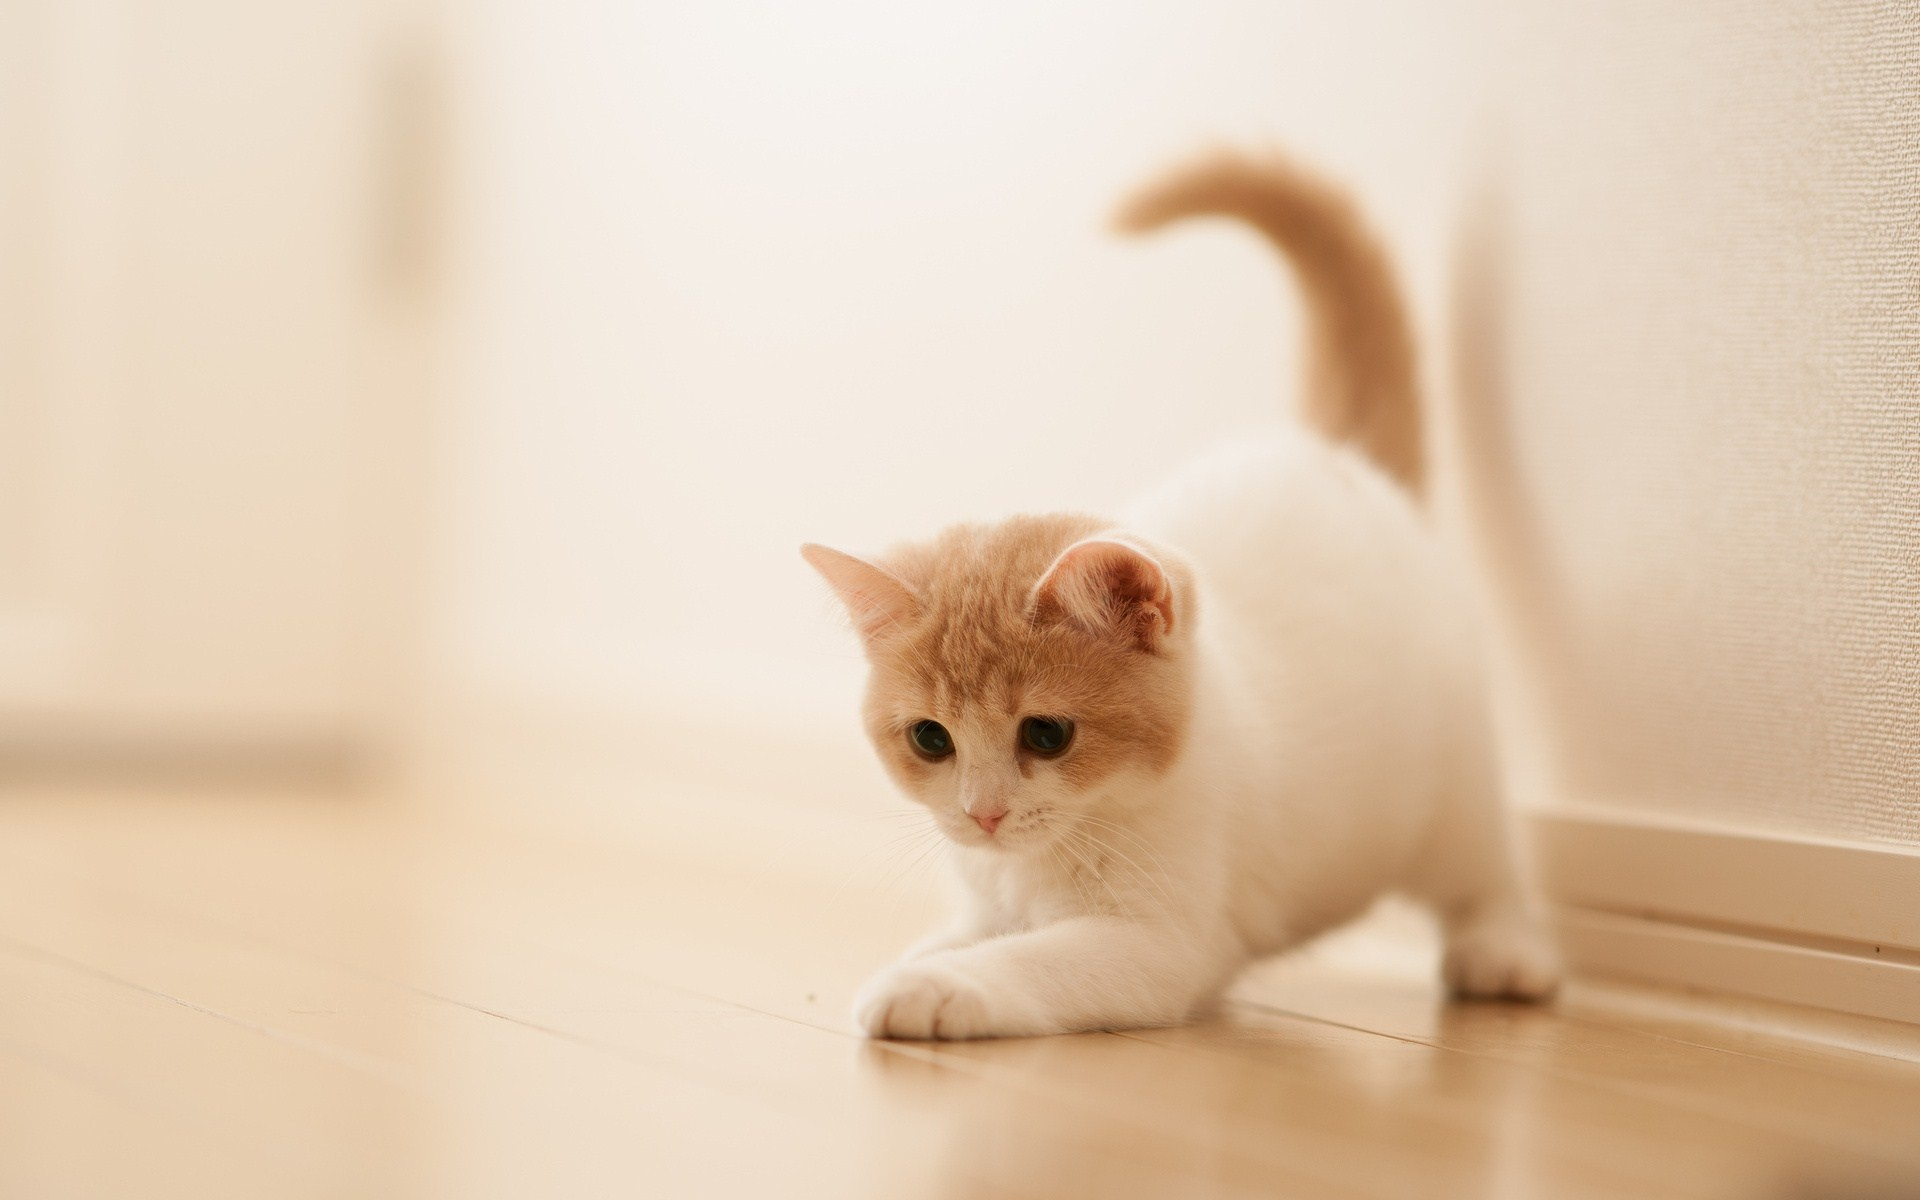 wallpaper.wiki-Photos-Cute-white-Kitty-1920x1200-PIC-WPD0012469